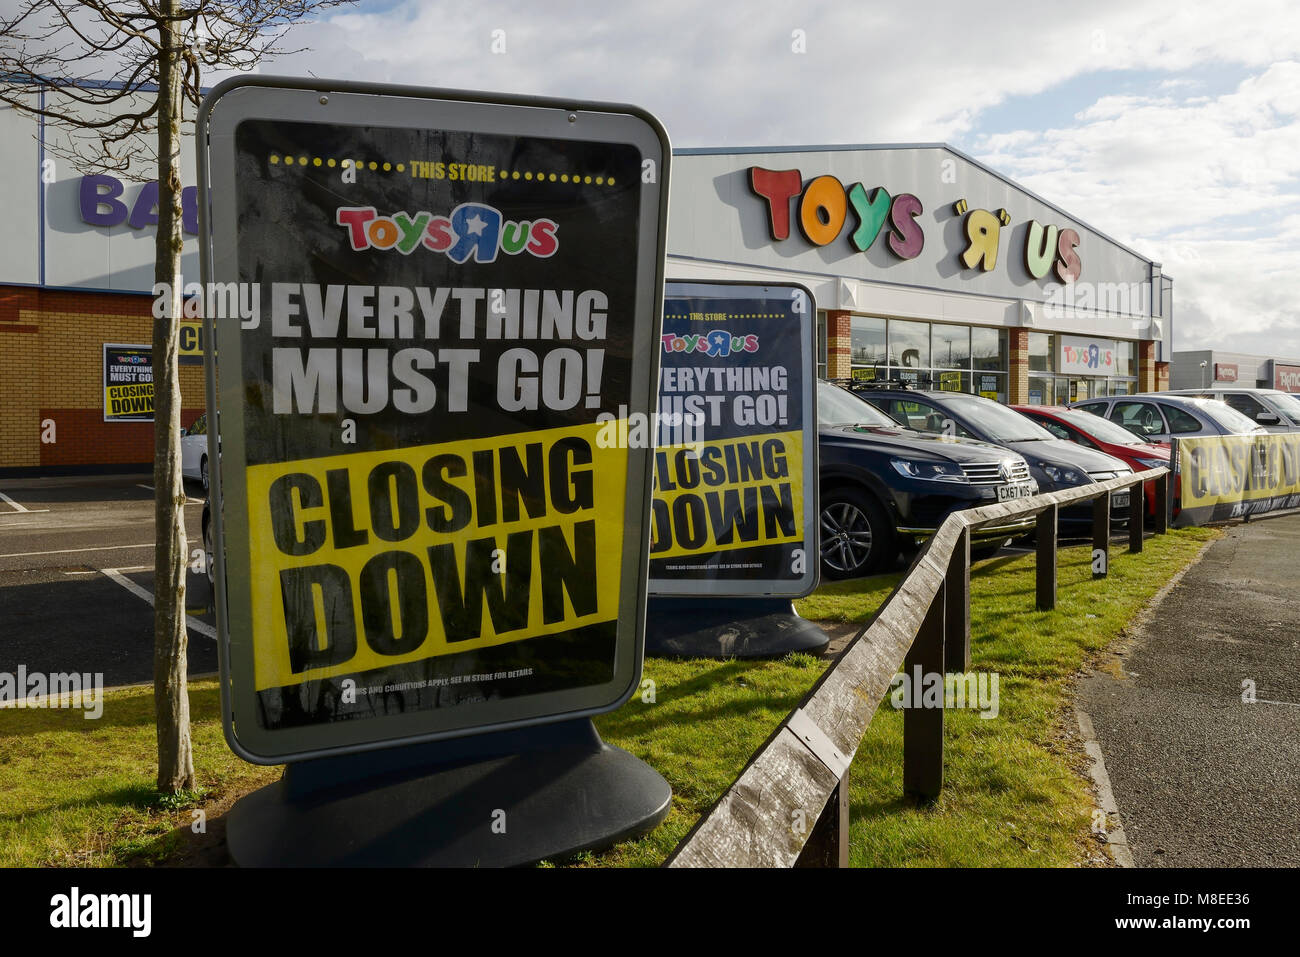 Chester, UK. 16th March 2018. The Toys R Us closing down sale continues at the store on Old Seals Way on the outskirts - Stock Image